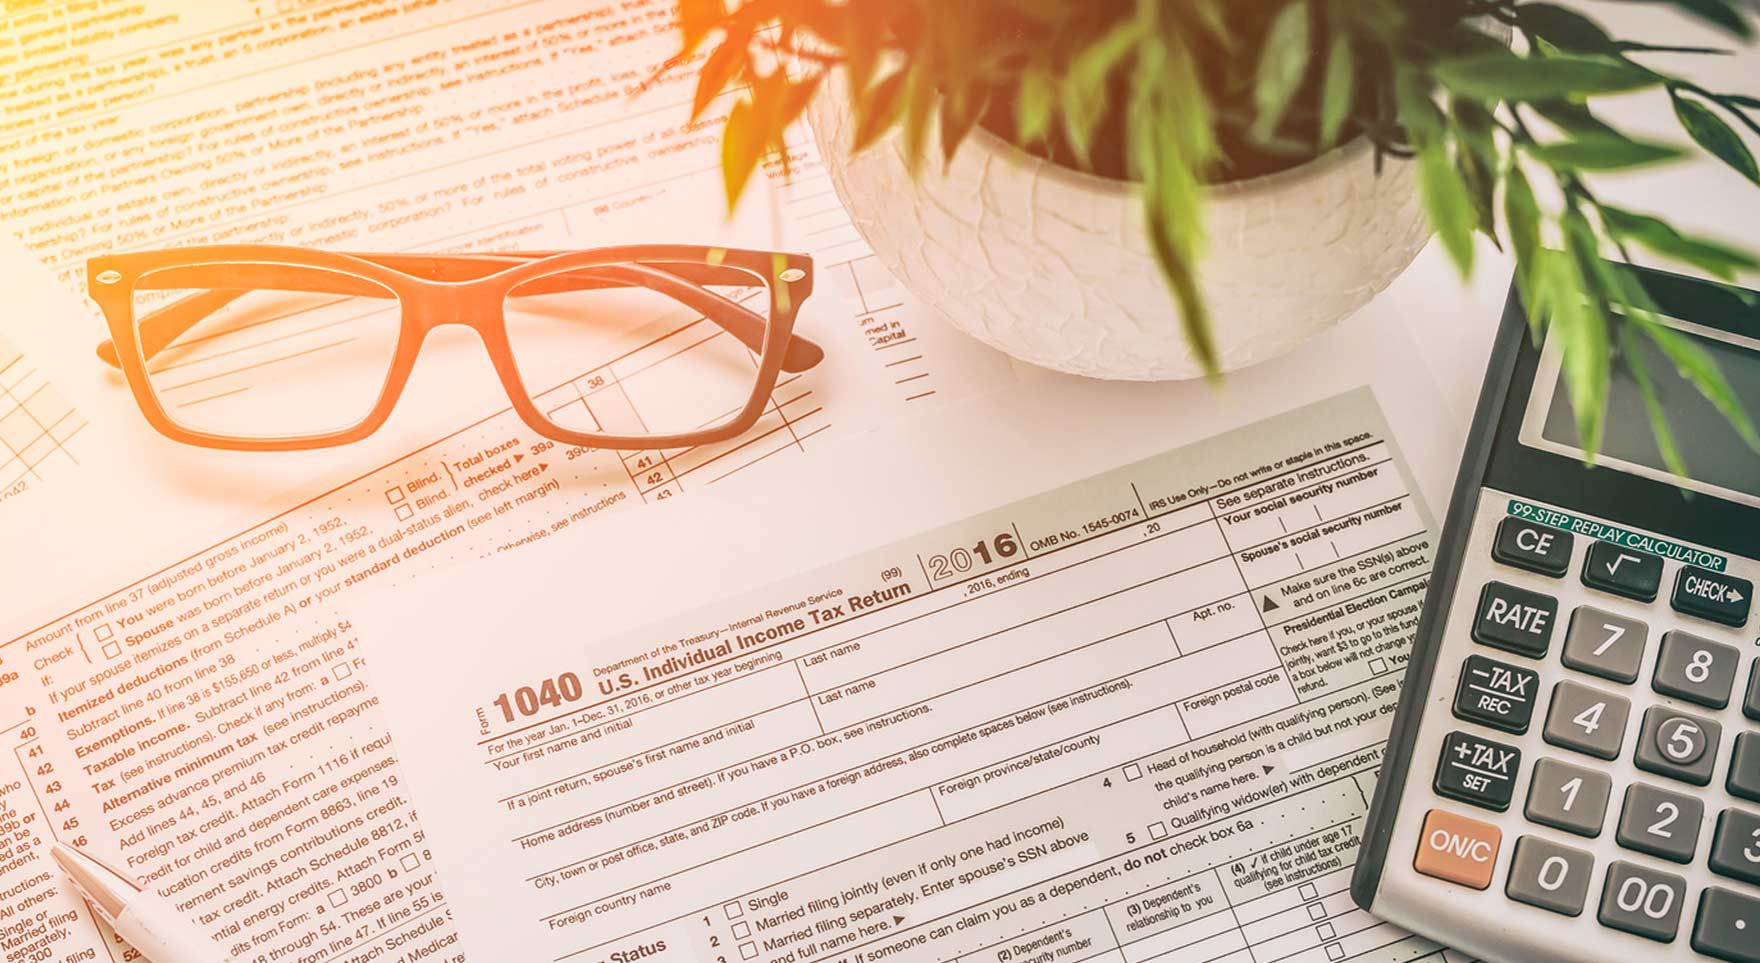 Common Tax Forms: What You Need to Know